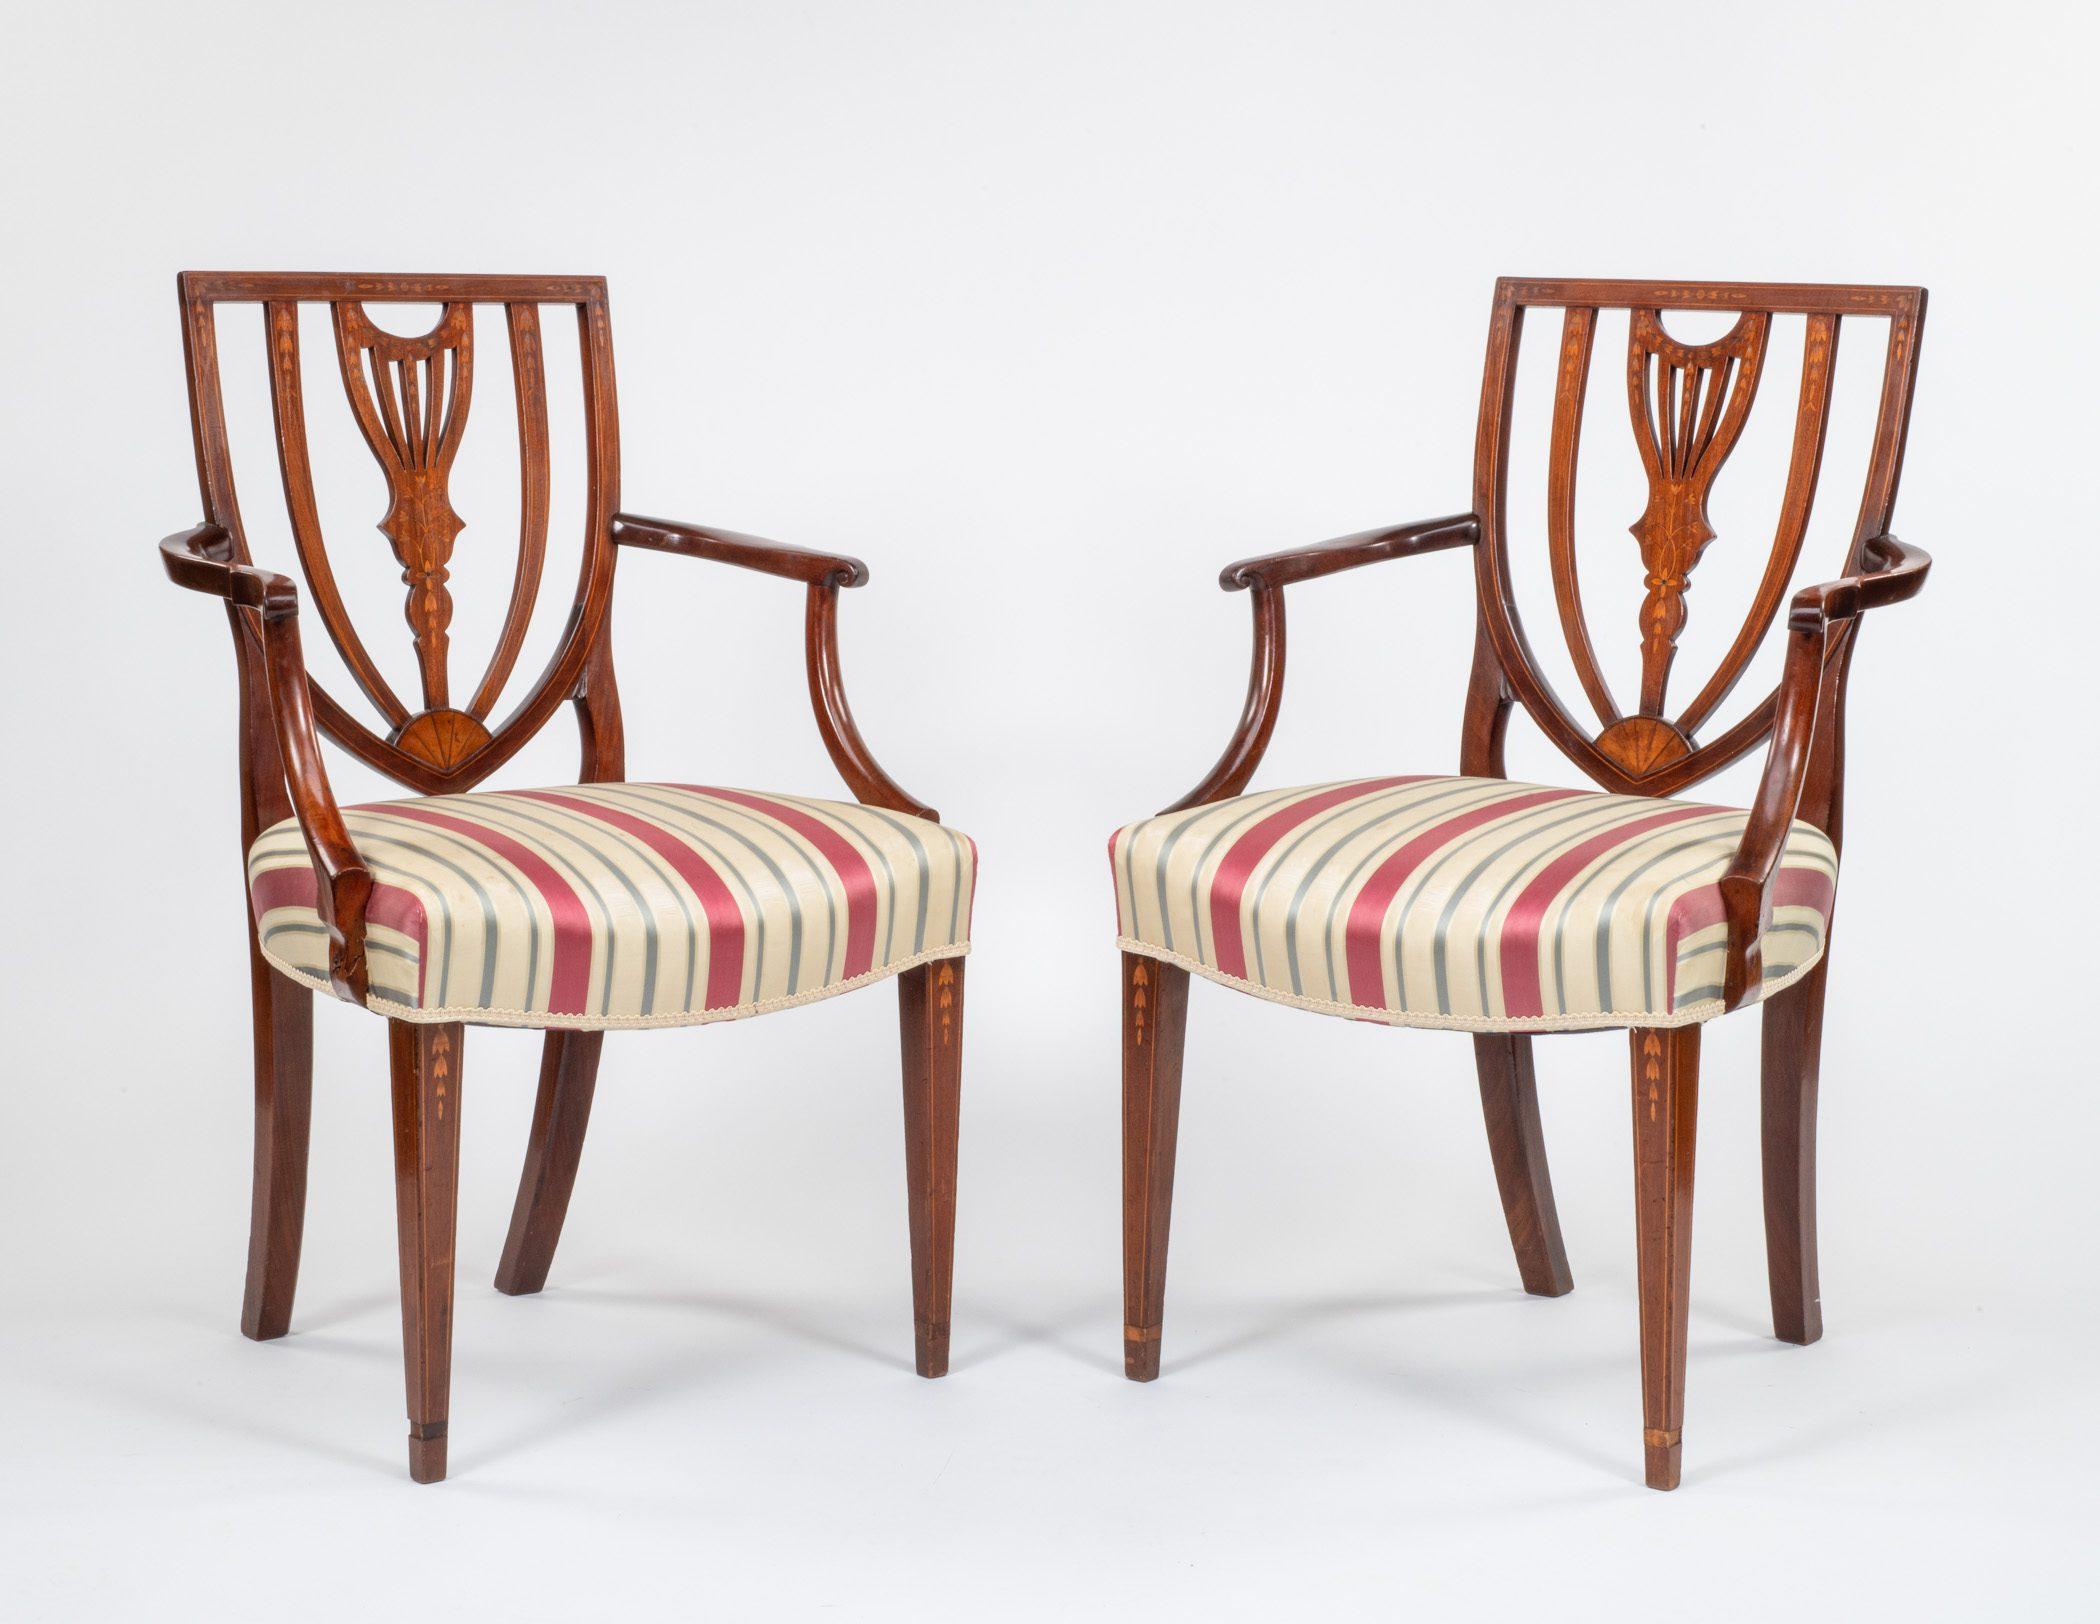 A pair of chairs made for Alexander Hamilton and his wife.